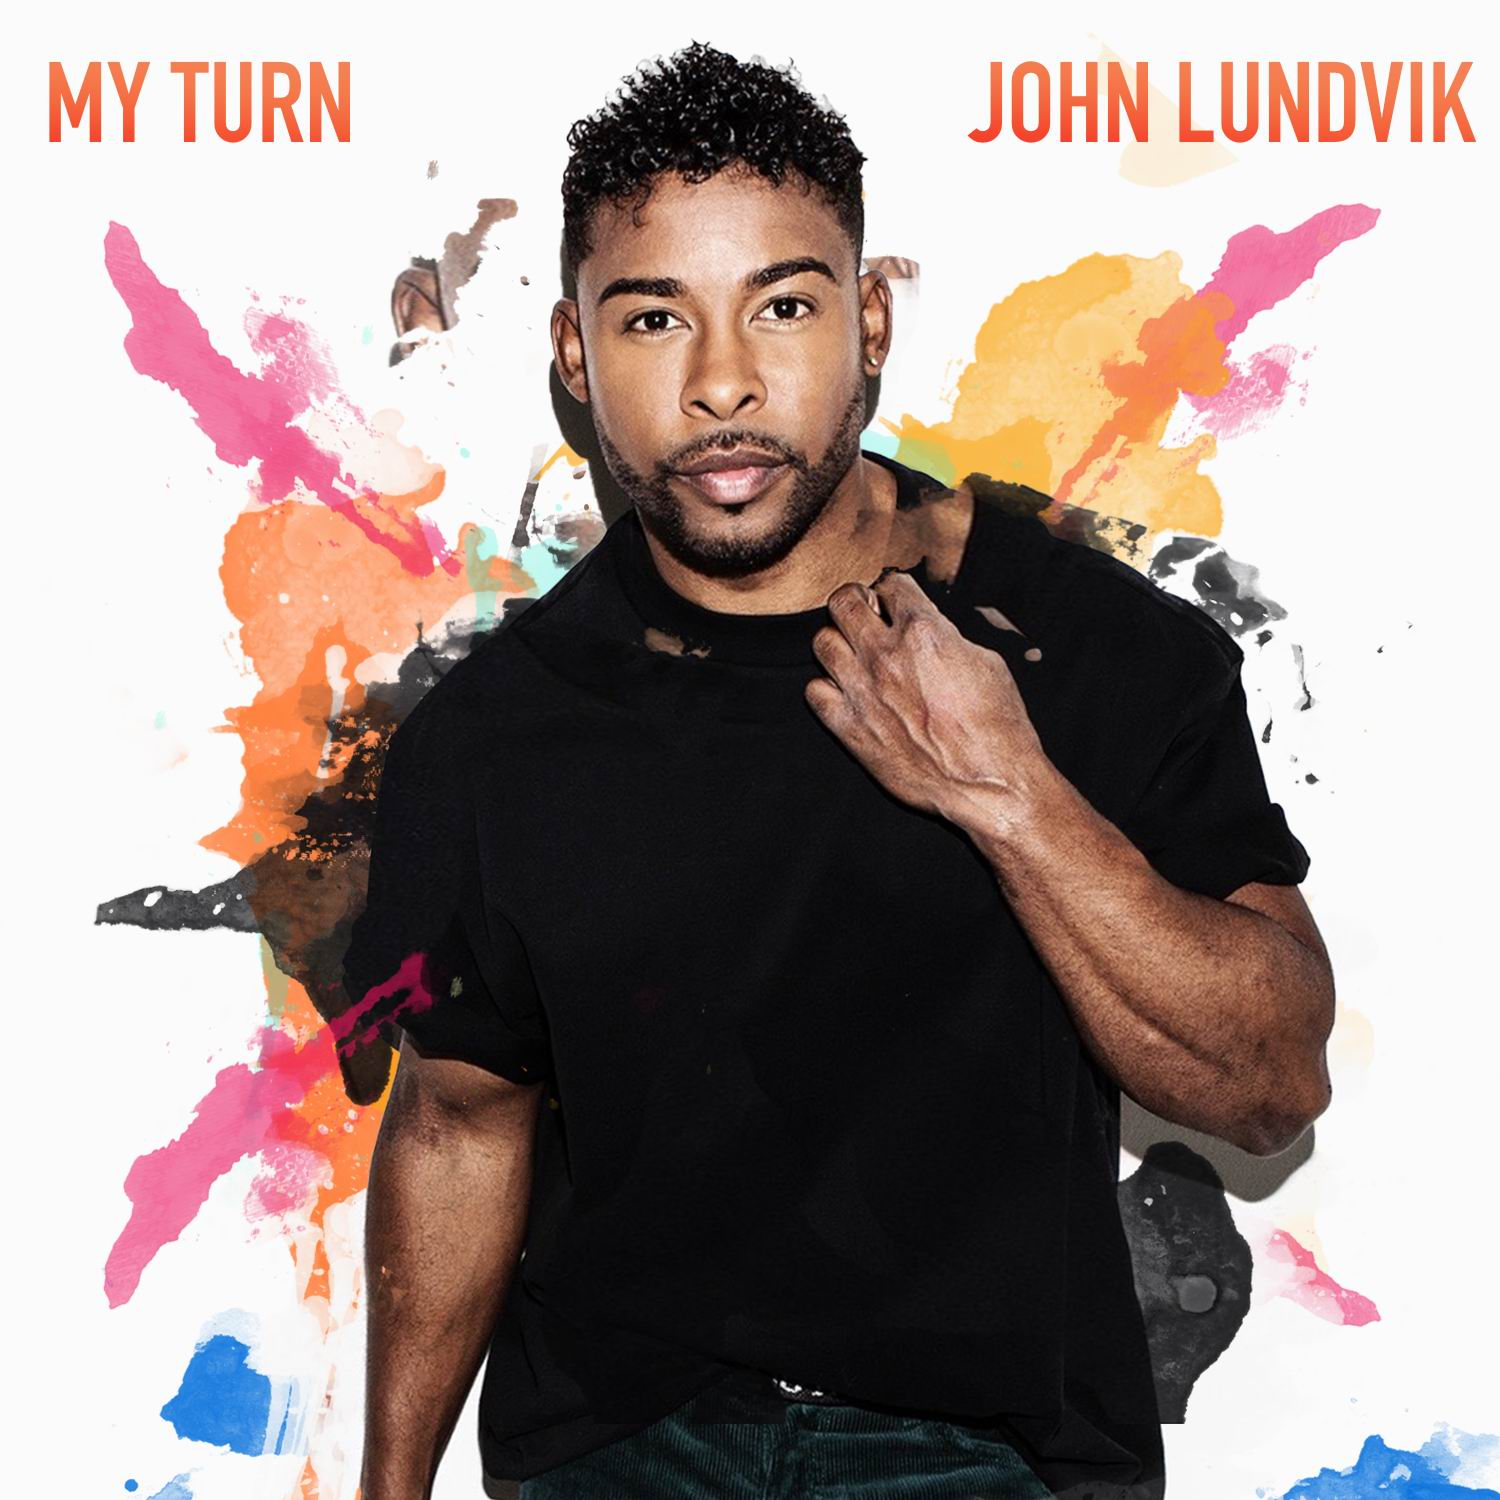 All That Way For Love 2011 esckaz - eurovision 2019 - john lundvik (sweden) / Йон